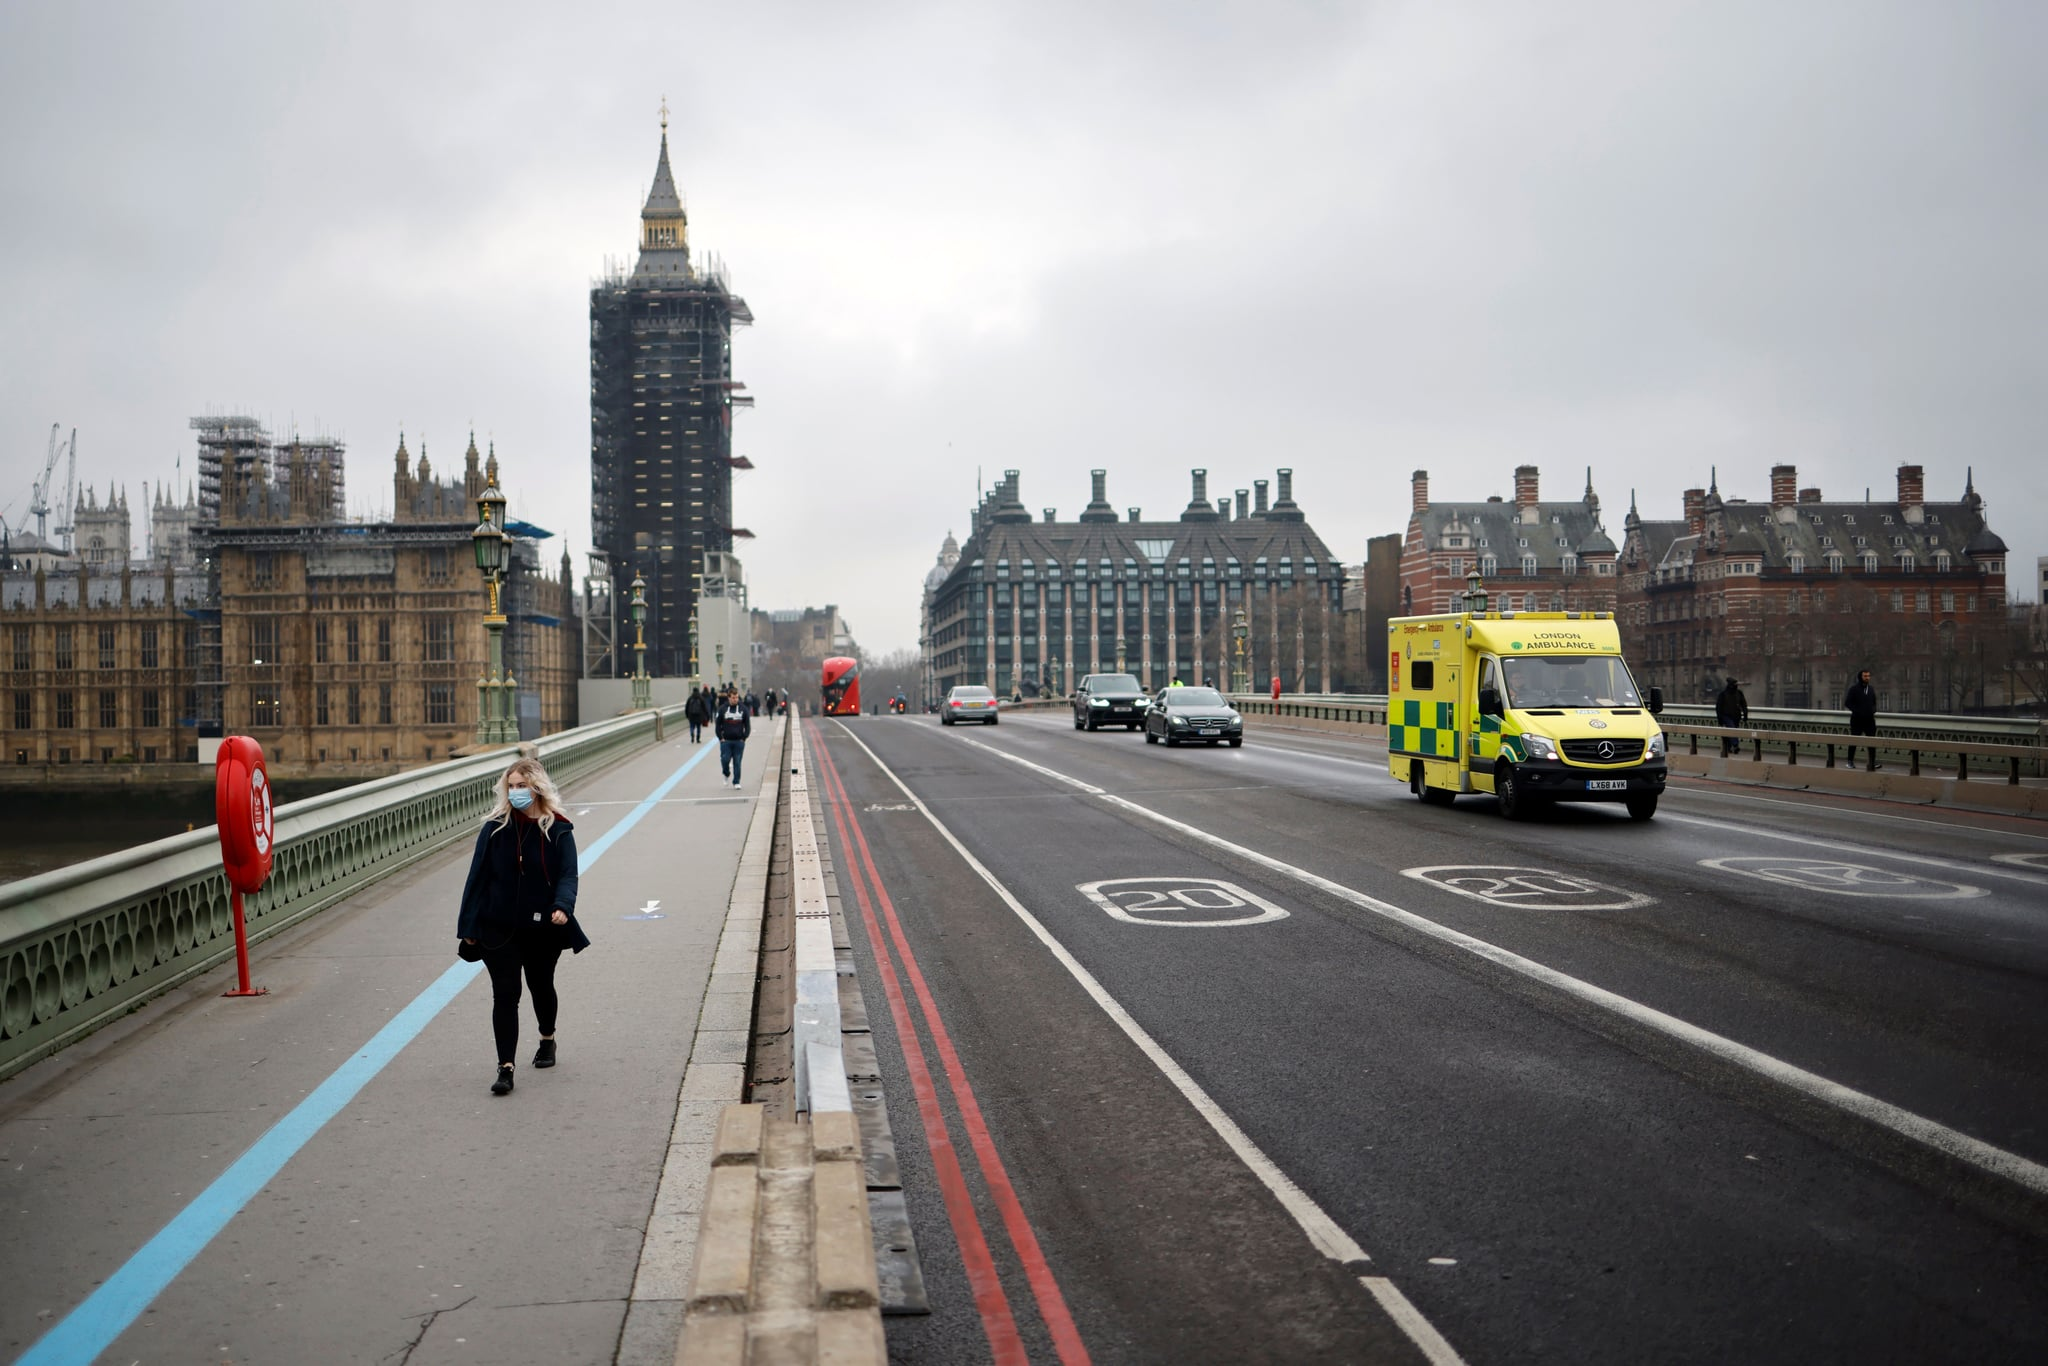 A pedestrian wearing a face mask walks across Westminster bridge as an ambulance passes by in central London on January 8, 2021, as England entered a third lockdown due to the novel coronavirus Covid-19. - Faced by a sharp rise in coronavirus infections, driven by the new strain, England entered a strict lockdown on January 5, 2021, with schools and non-essential shops closed for at least six weeks after previous measures failed to halt the steep rise in cases. (Photo by Tolga Akmen / AFP) (Photo by TOLGA AKMEN/AFP via Getty Images)